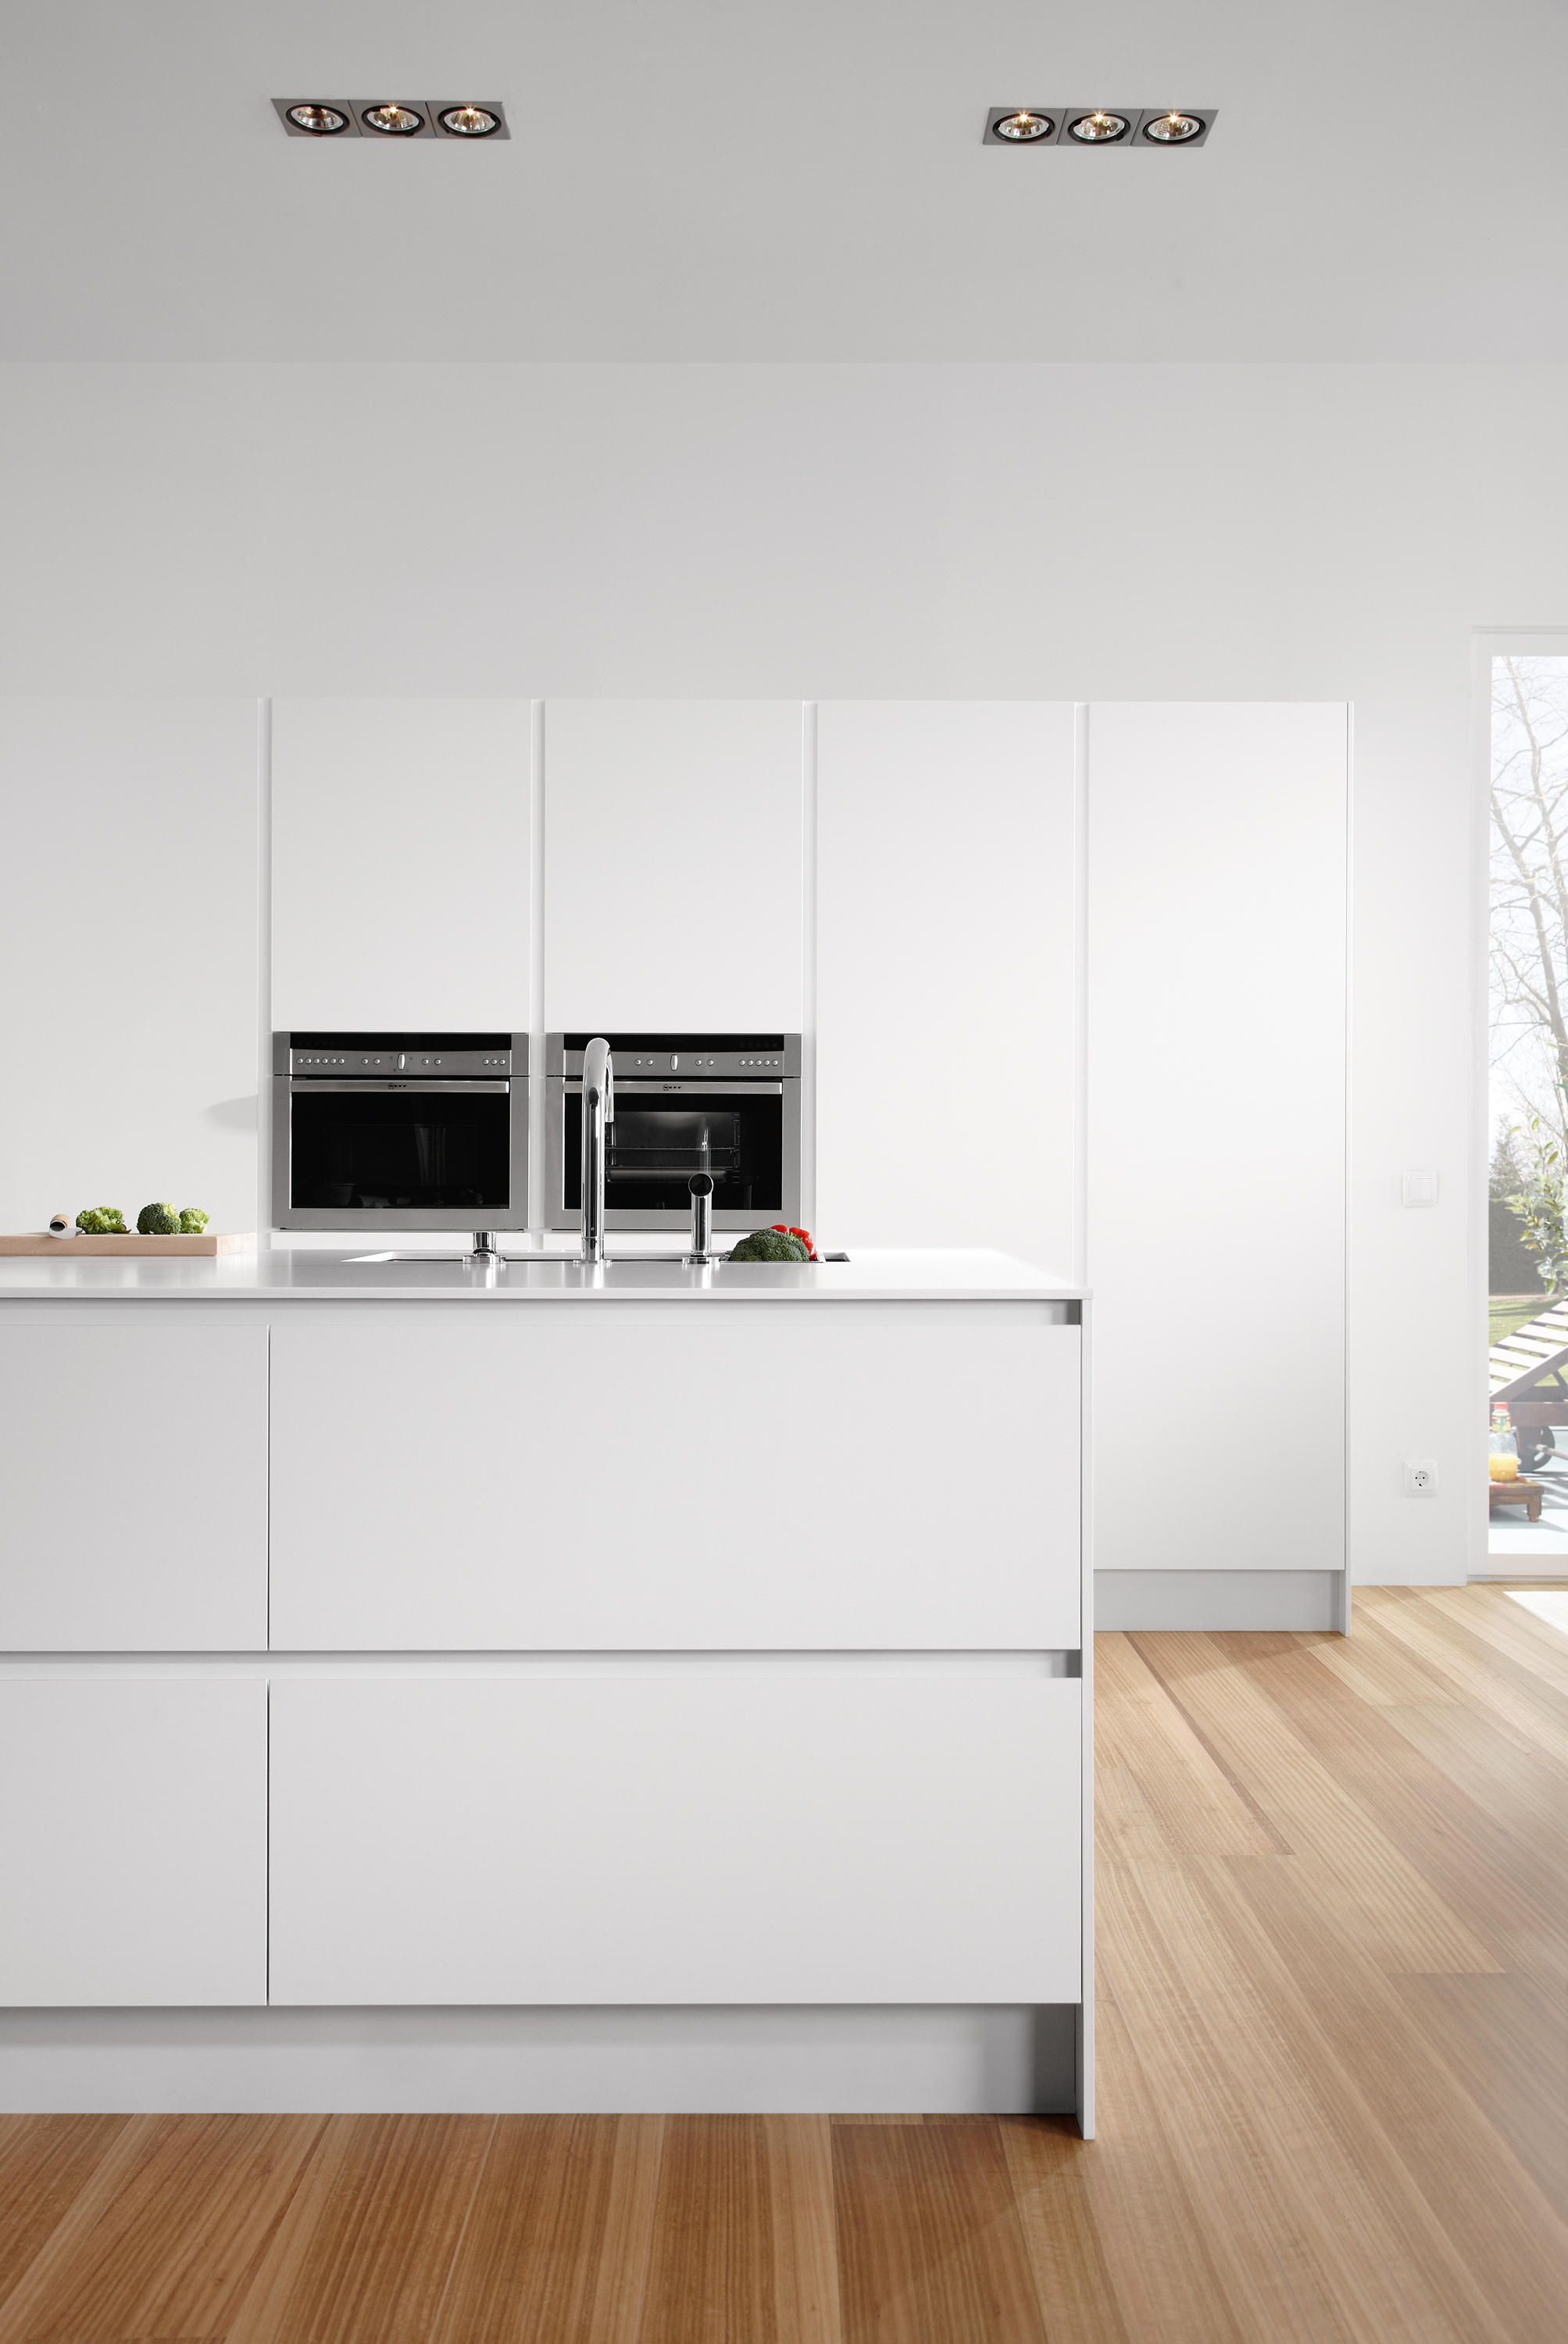 SERIE 45 | POLAR WHITE - Island kitchens from dica | Architonic